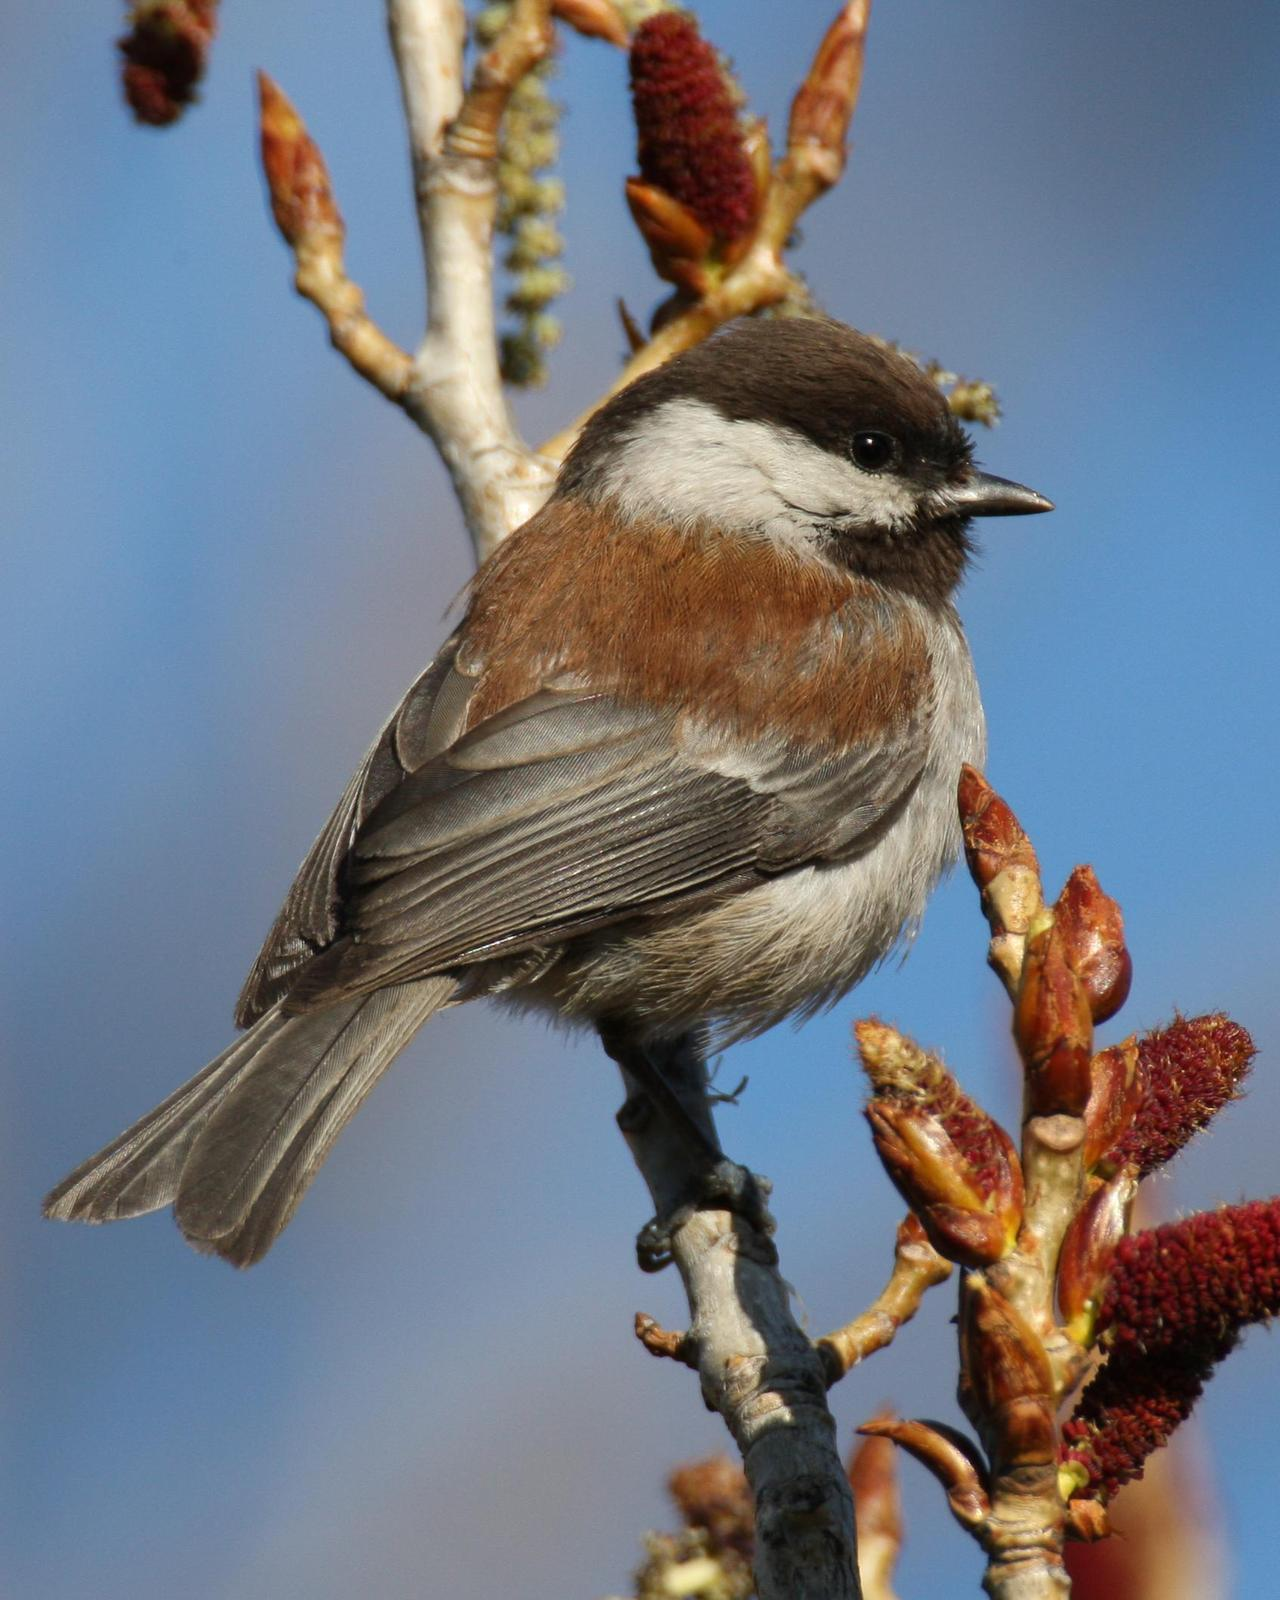 Chestnut-backed Chickadee Photo by Robert Lewis